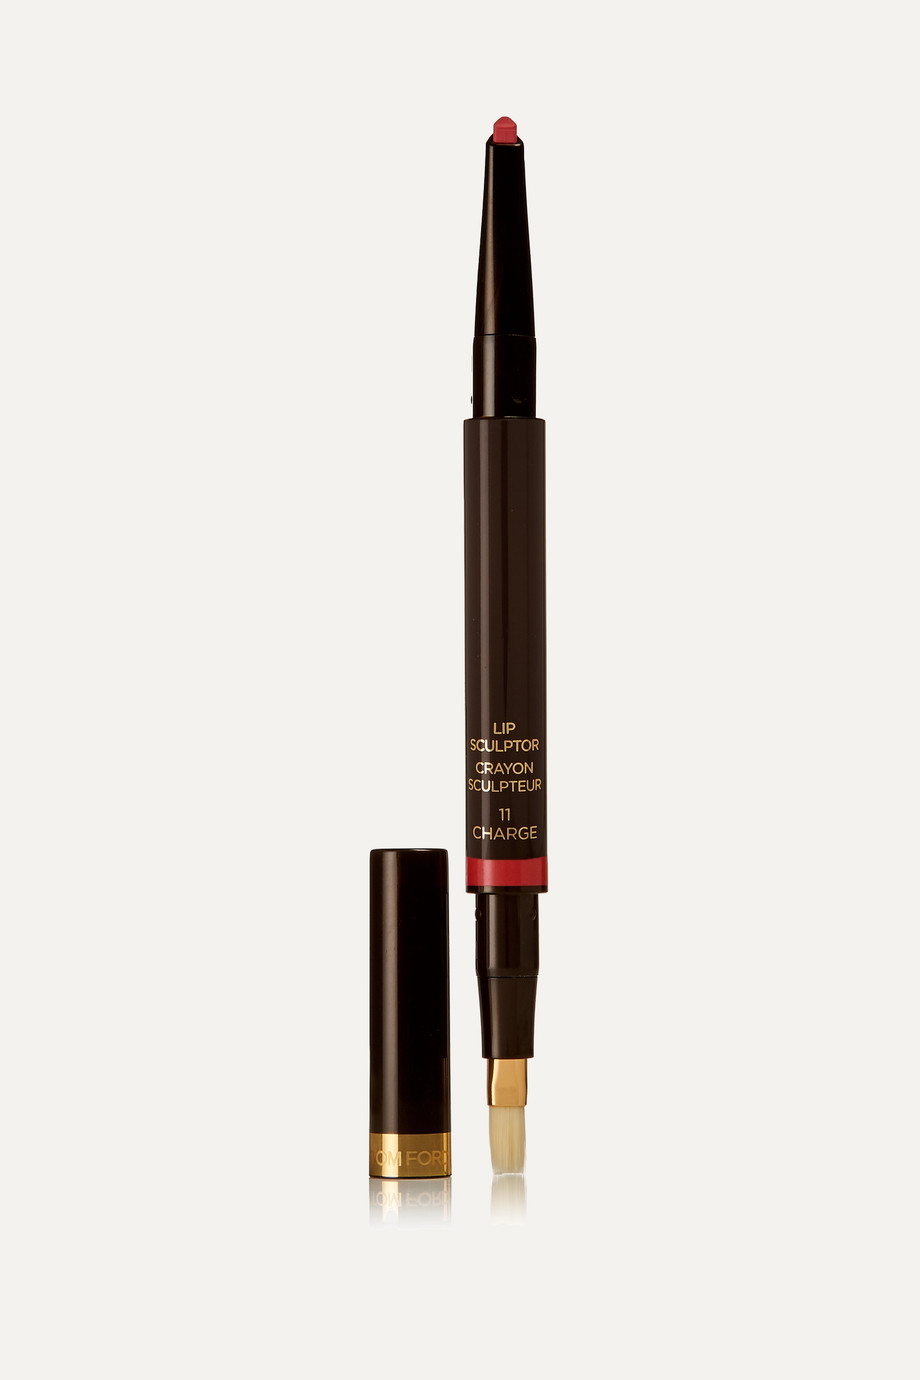 TOM FORD BEAUTY Lip Sculptor - Charge 11